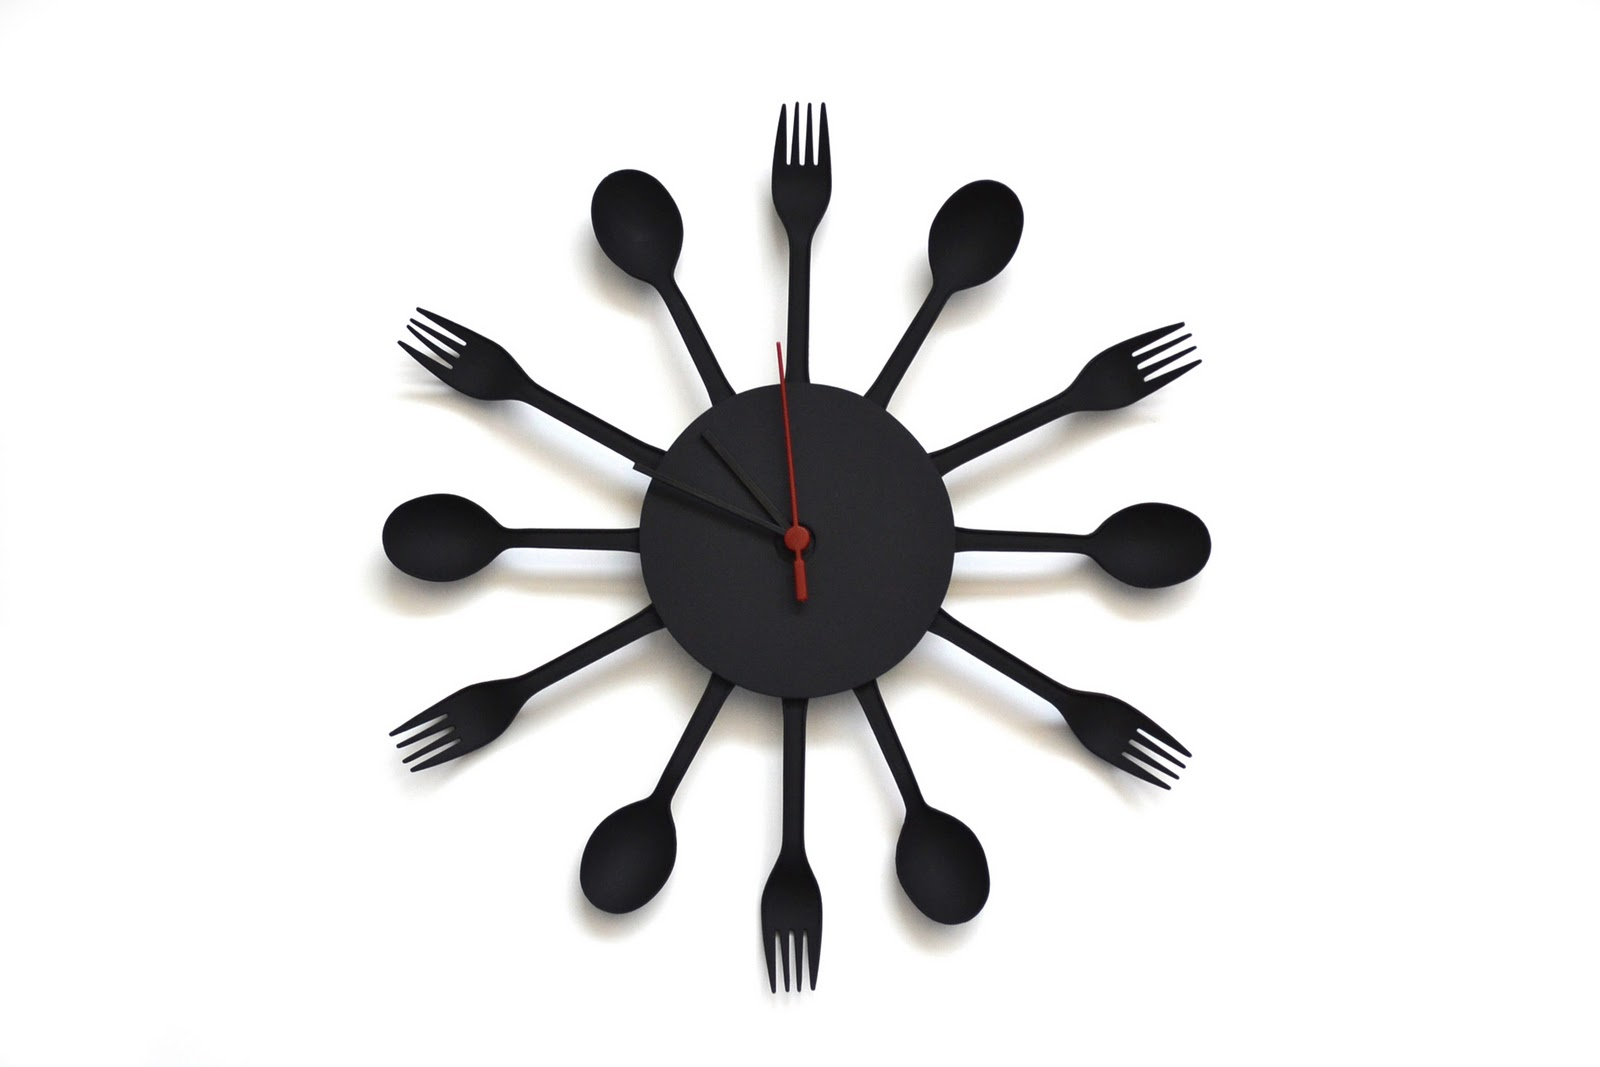 kitchen clock made with disposable flatware - Kitchen Clock